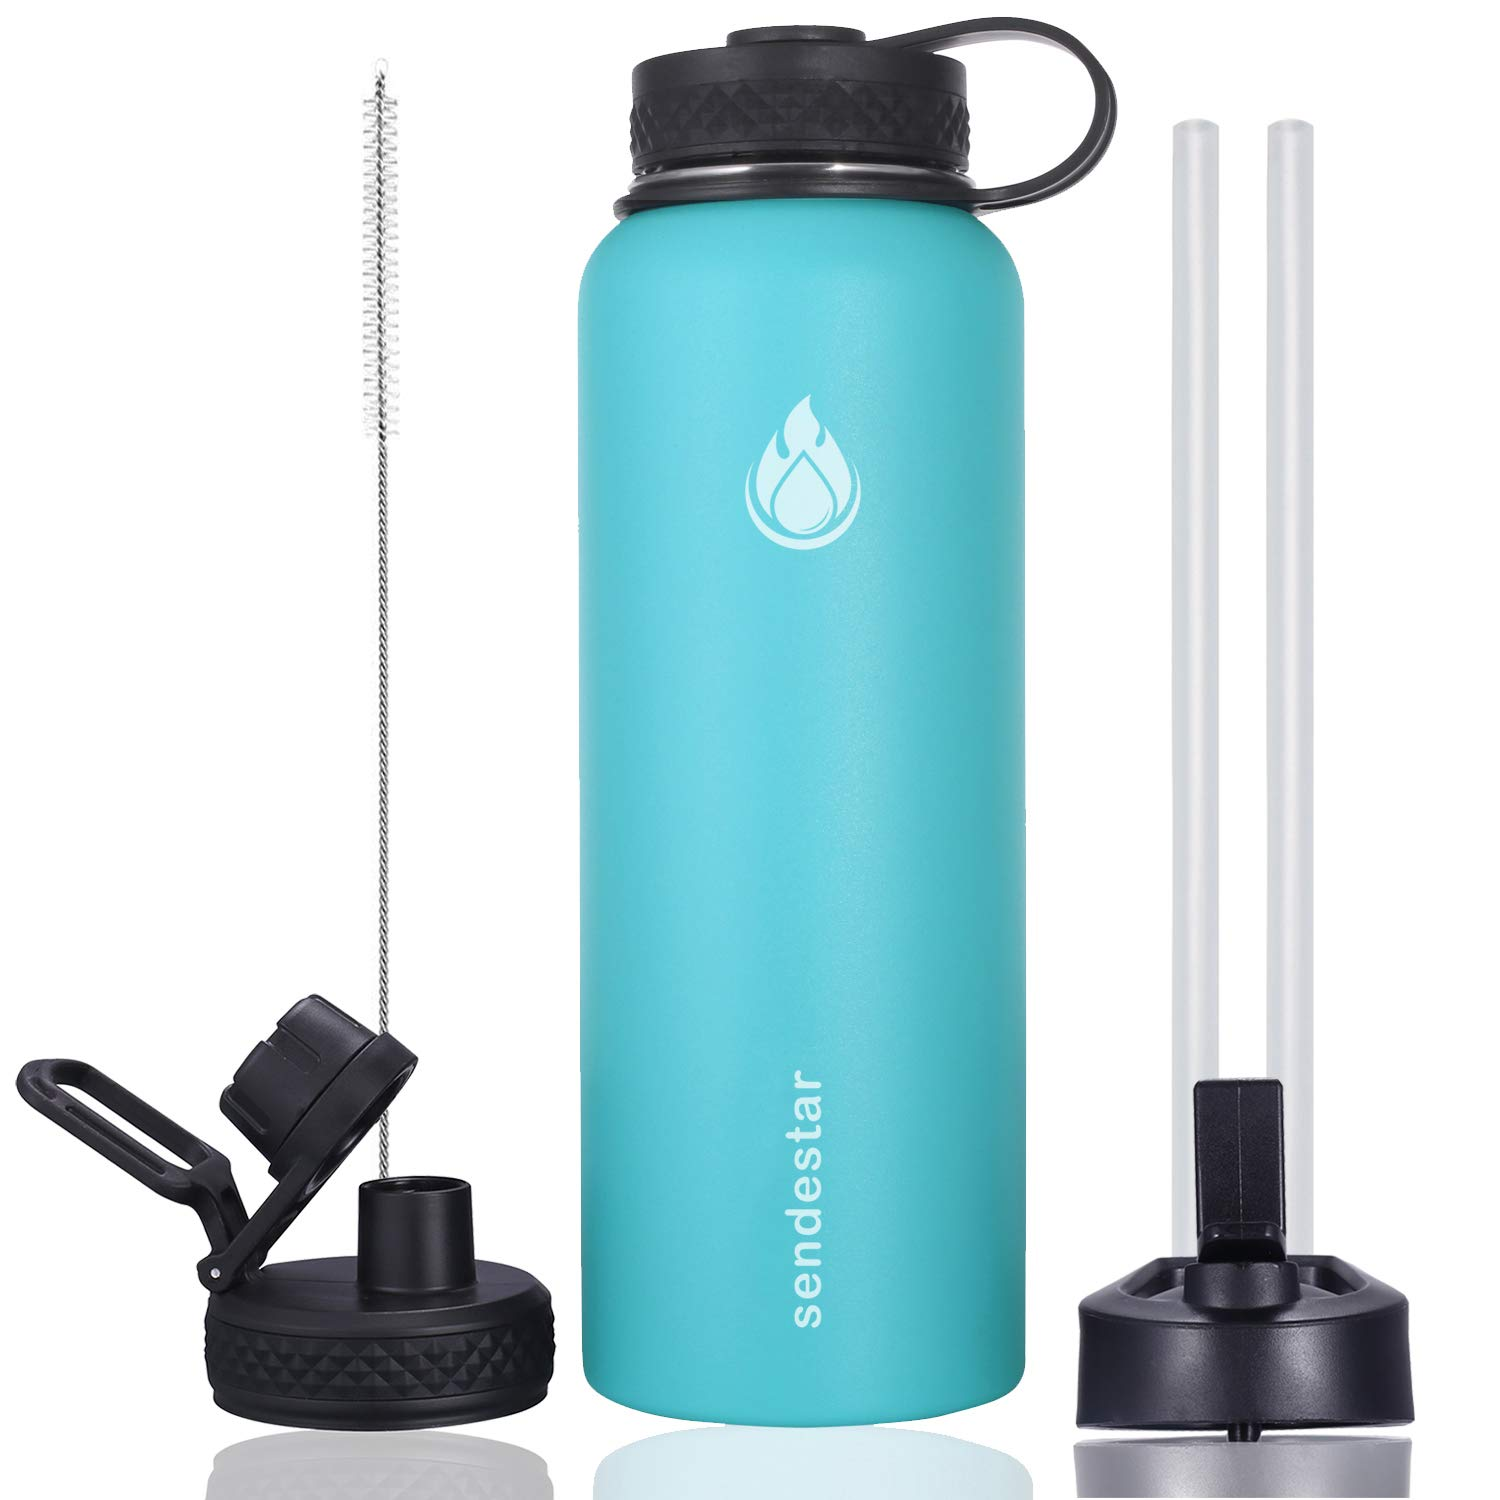 Sendestar 32 oz Double Wall Vacuum Insulated Leak Proof Stainless Steel Sports Water Bottle-Wide Mouth with Straw Lid & Flex Cap & Spout Lid (Sky Blue)